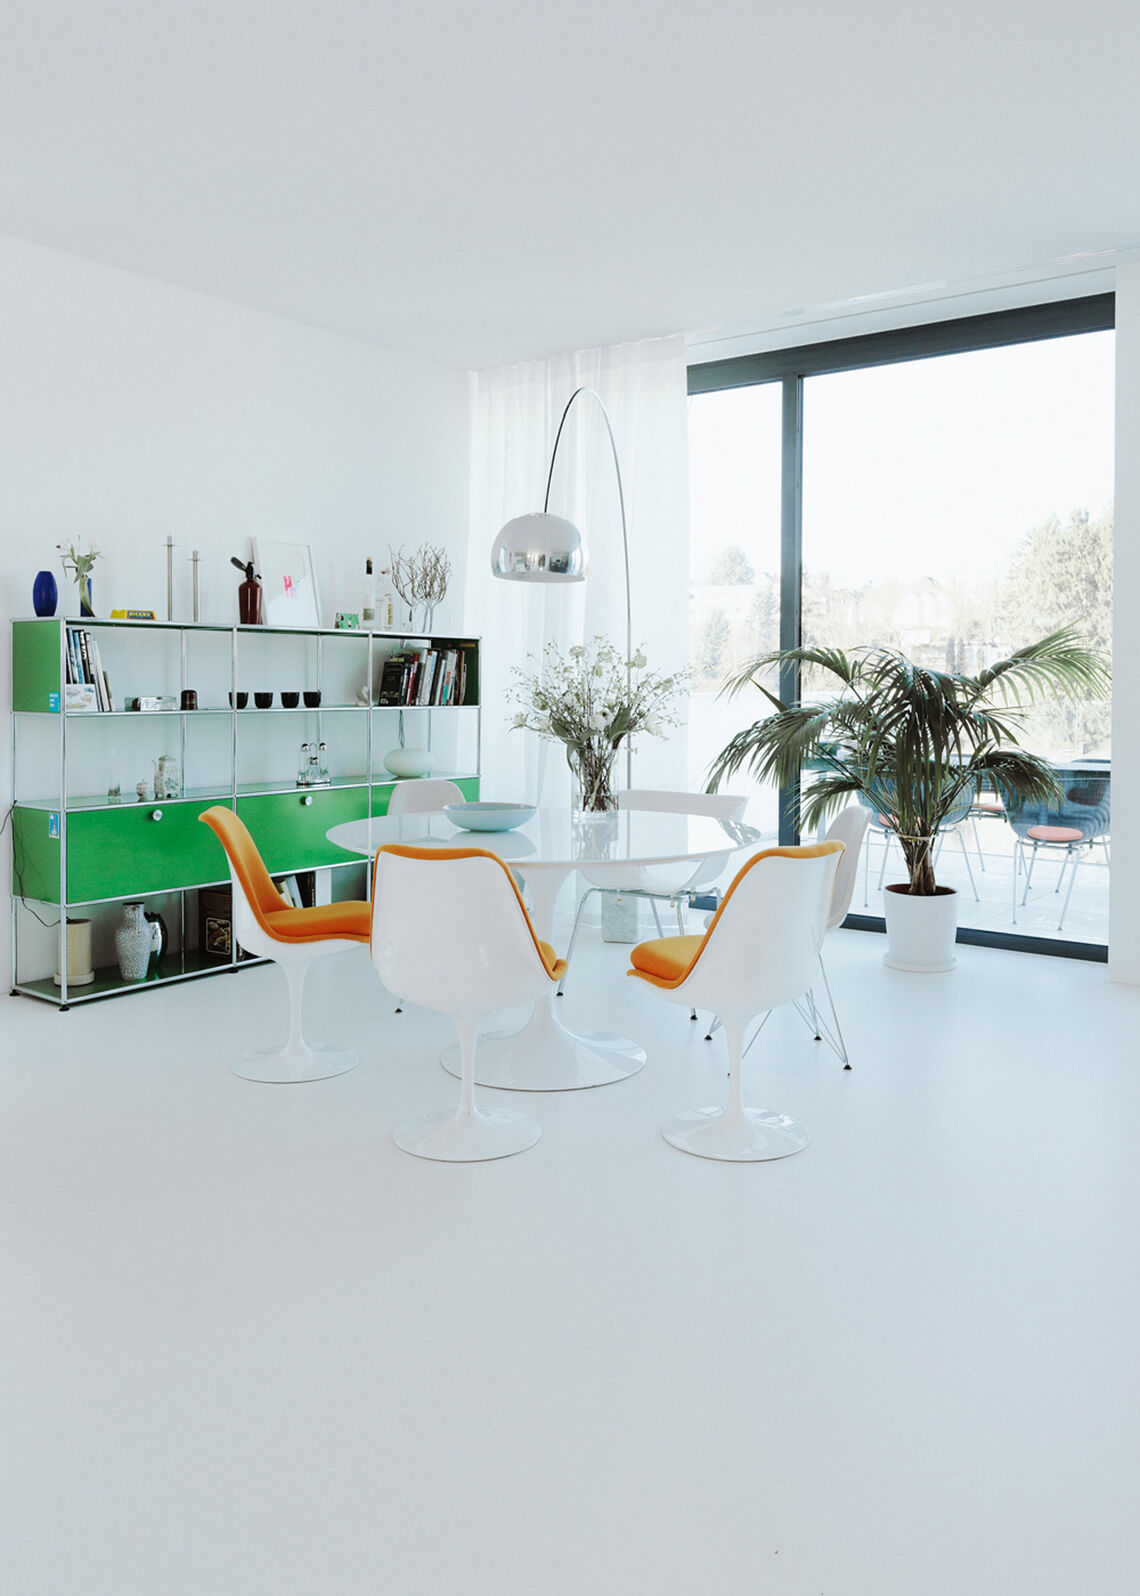 Open living/dining area with round dining table, orange chairs and green USM shelf